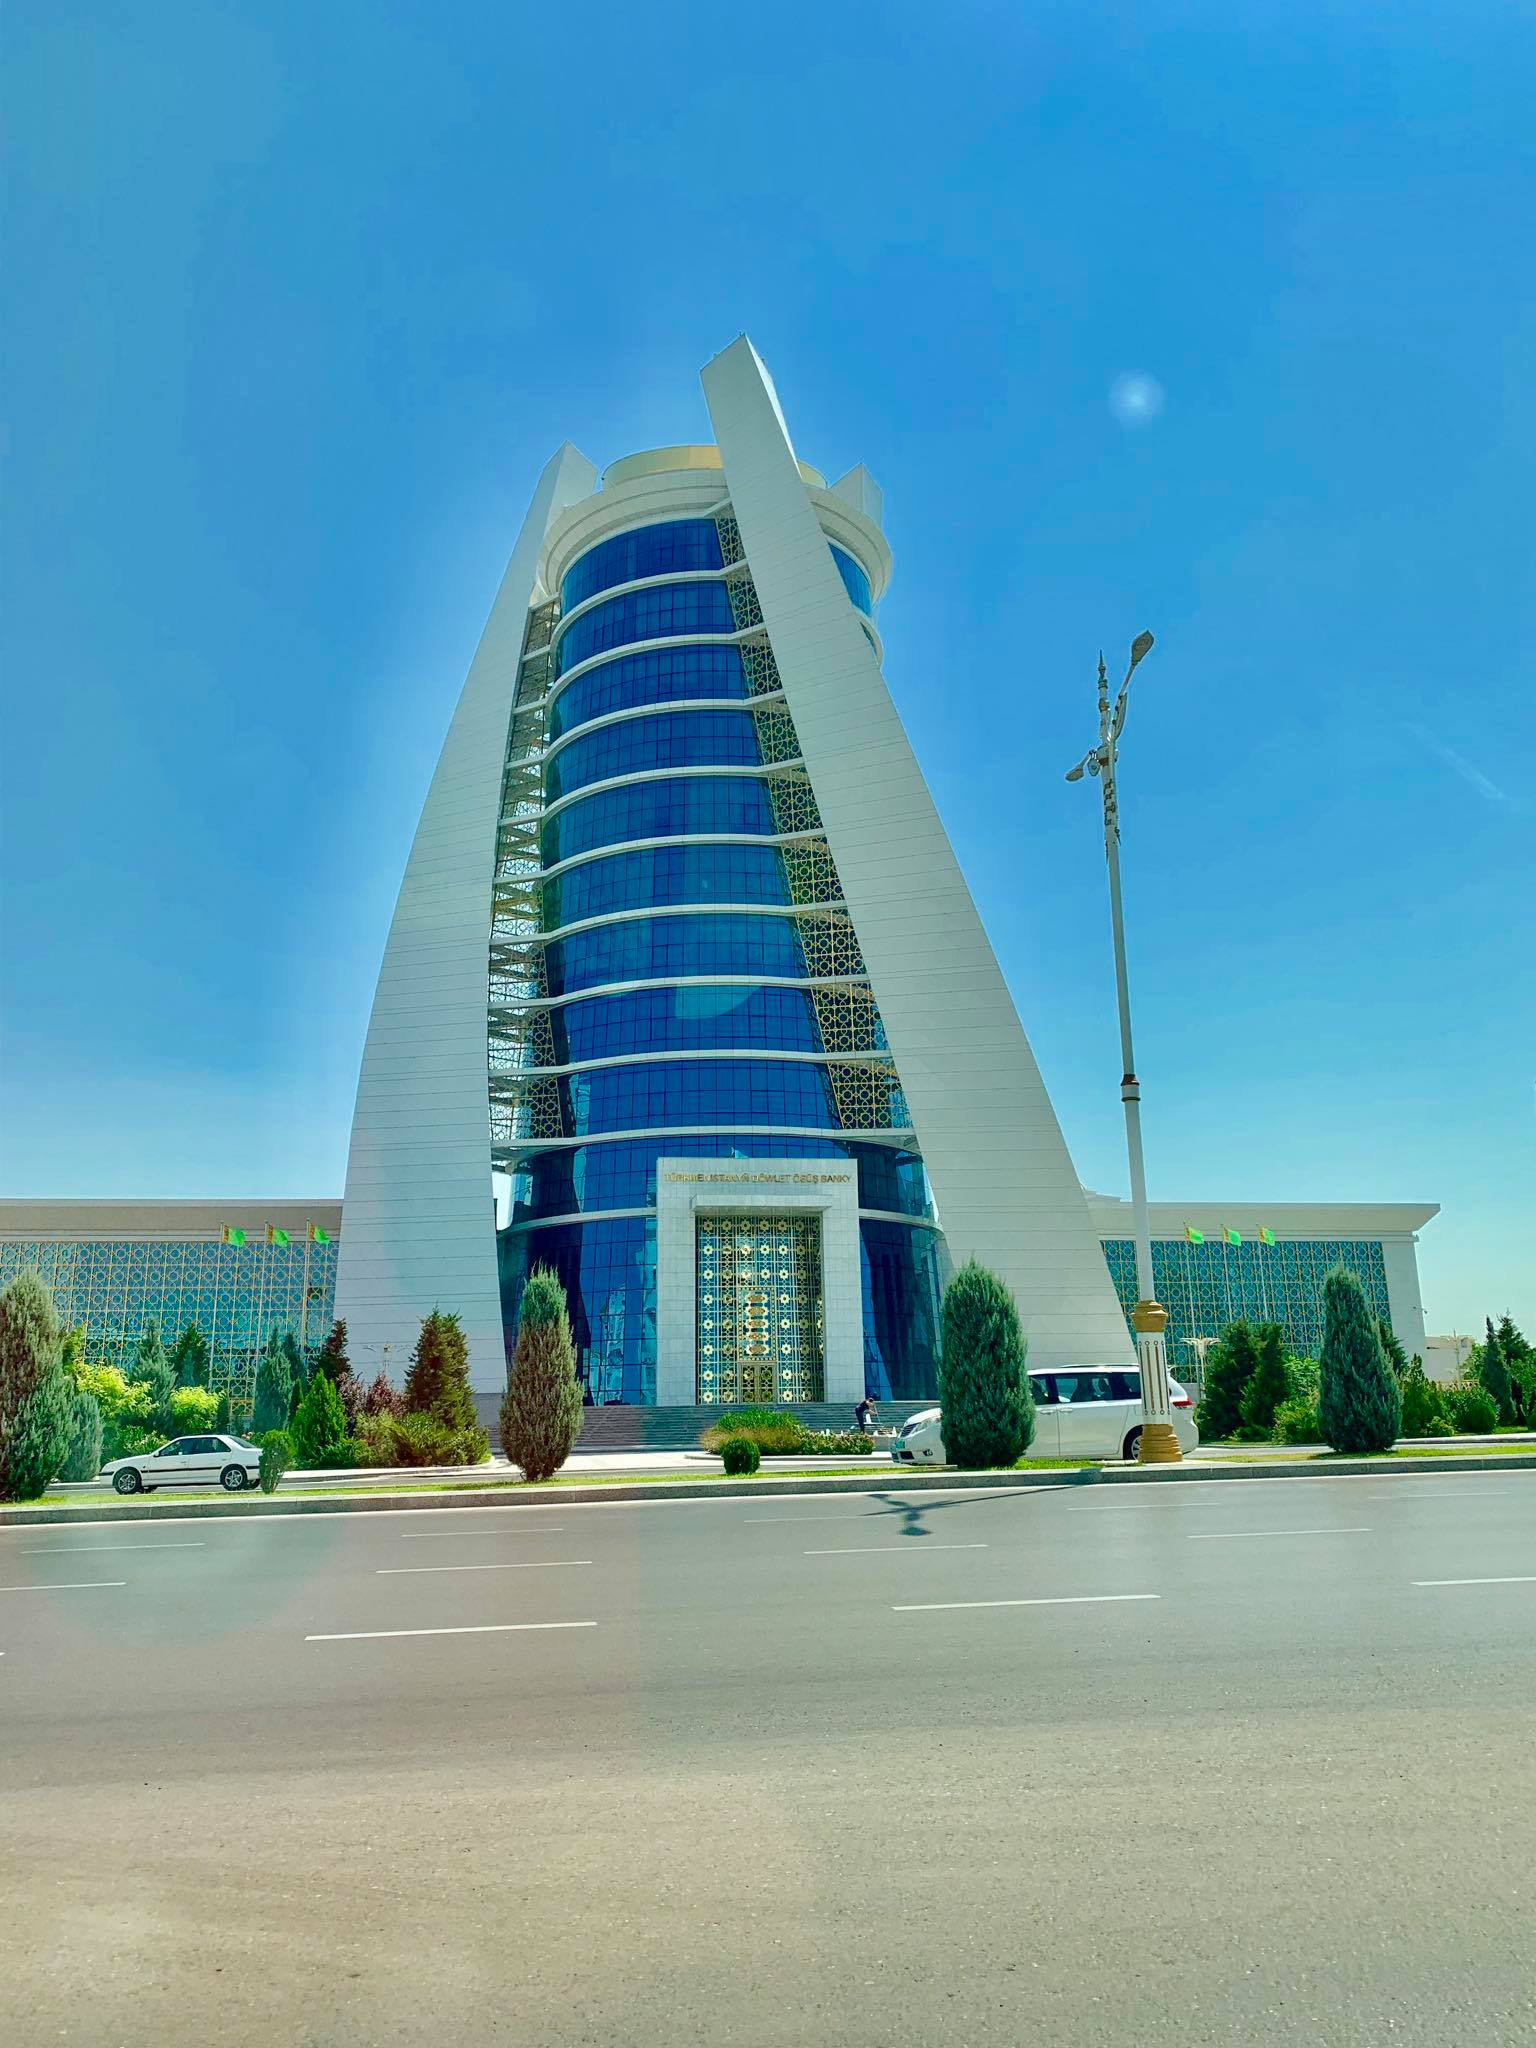 Kach Solo Travels in 2019 Quick tour around the capital, Ashgabat19.jpg